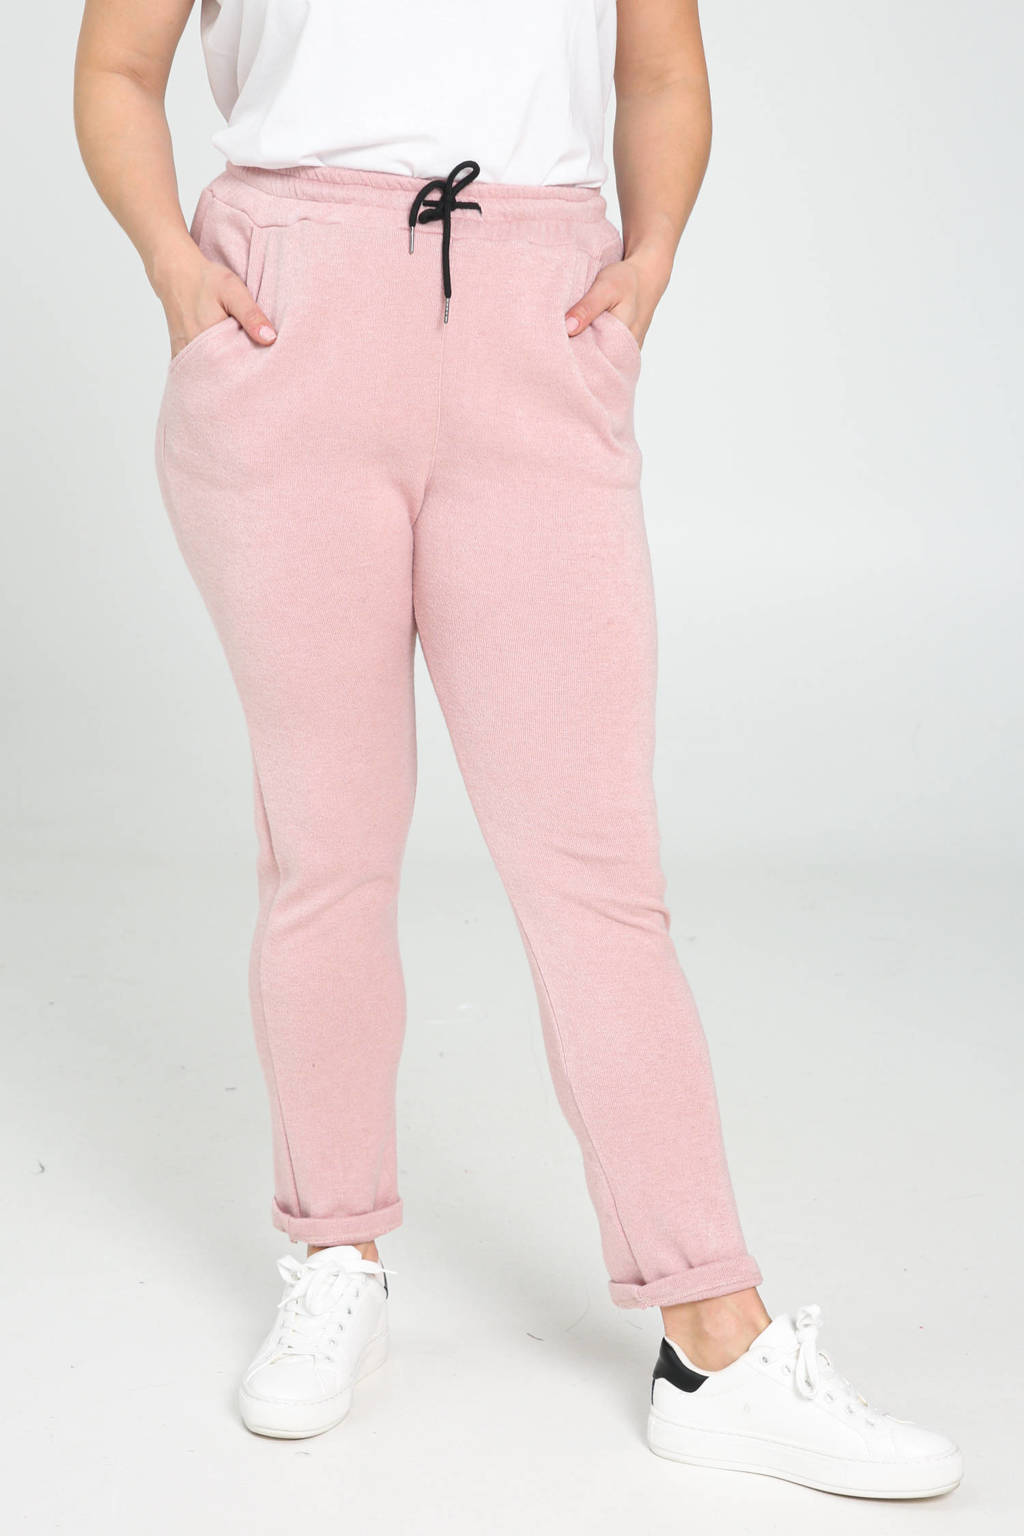 Paprika slim fit joggingbroek zwart, Rosé